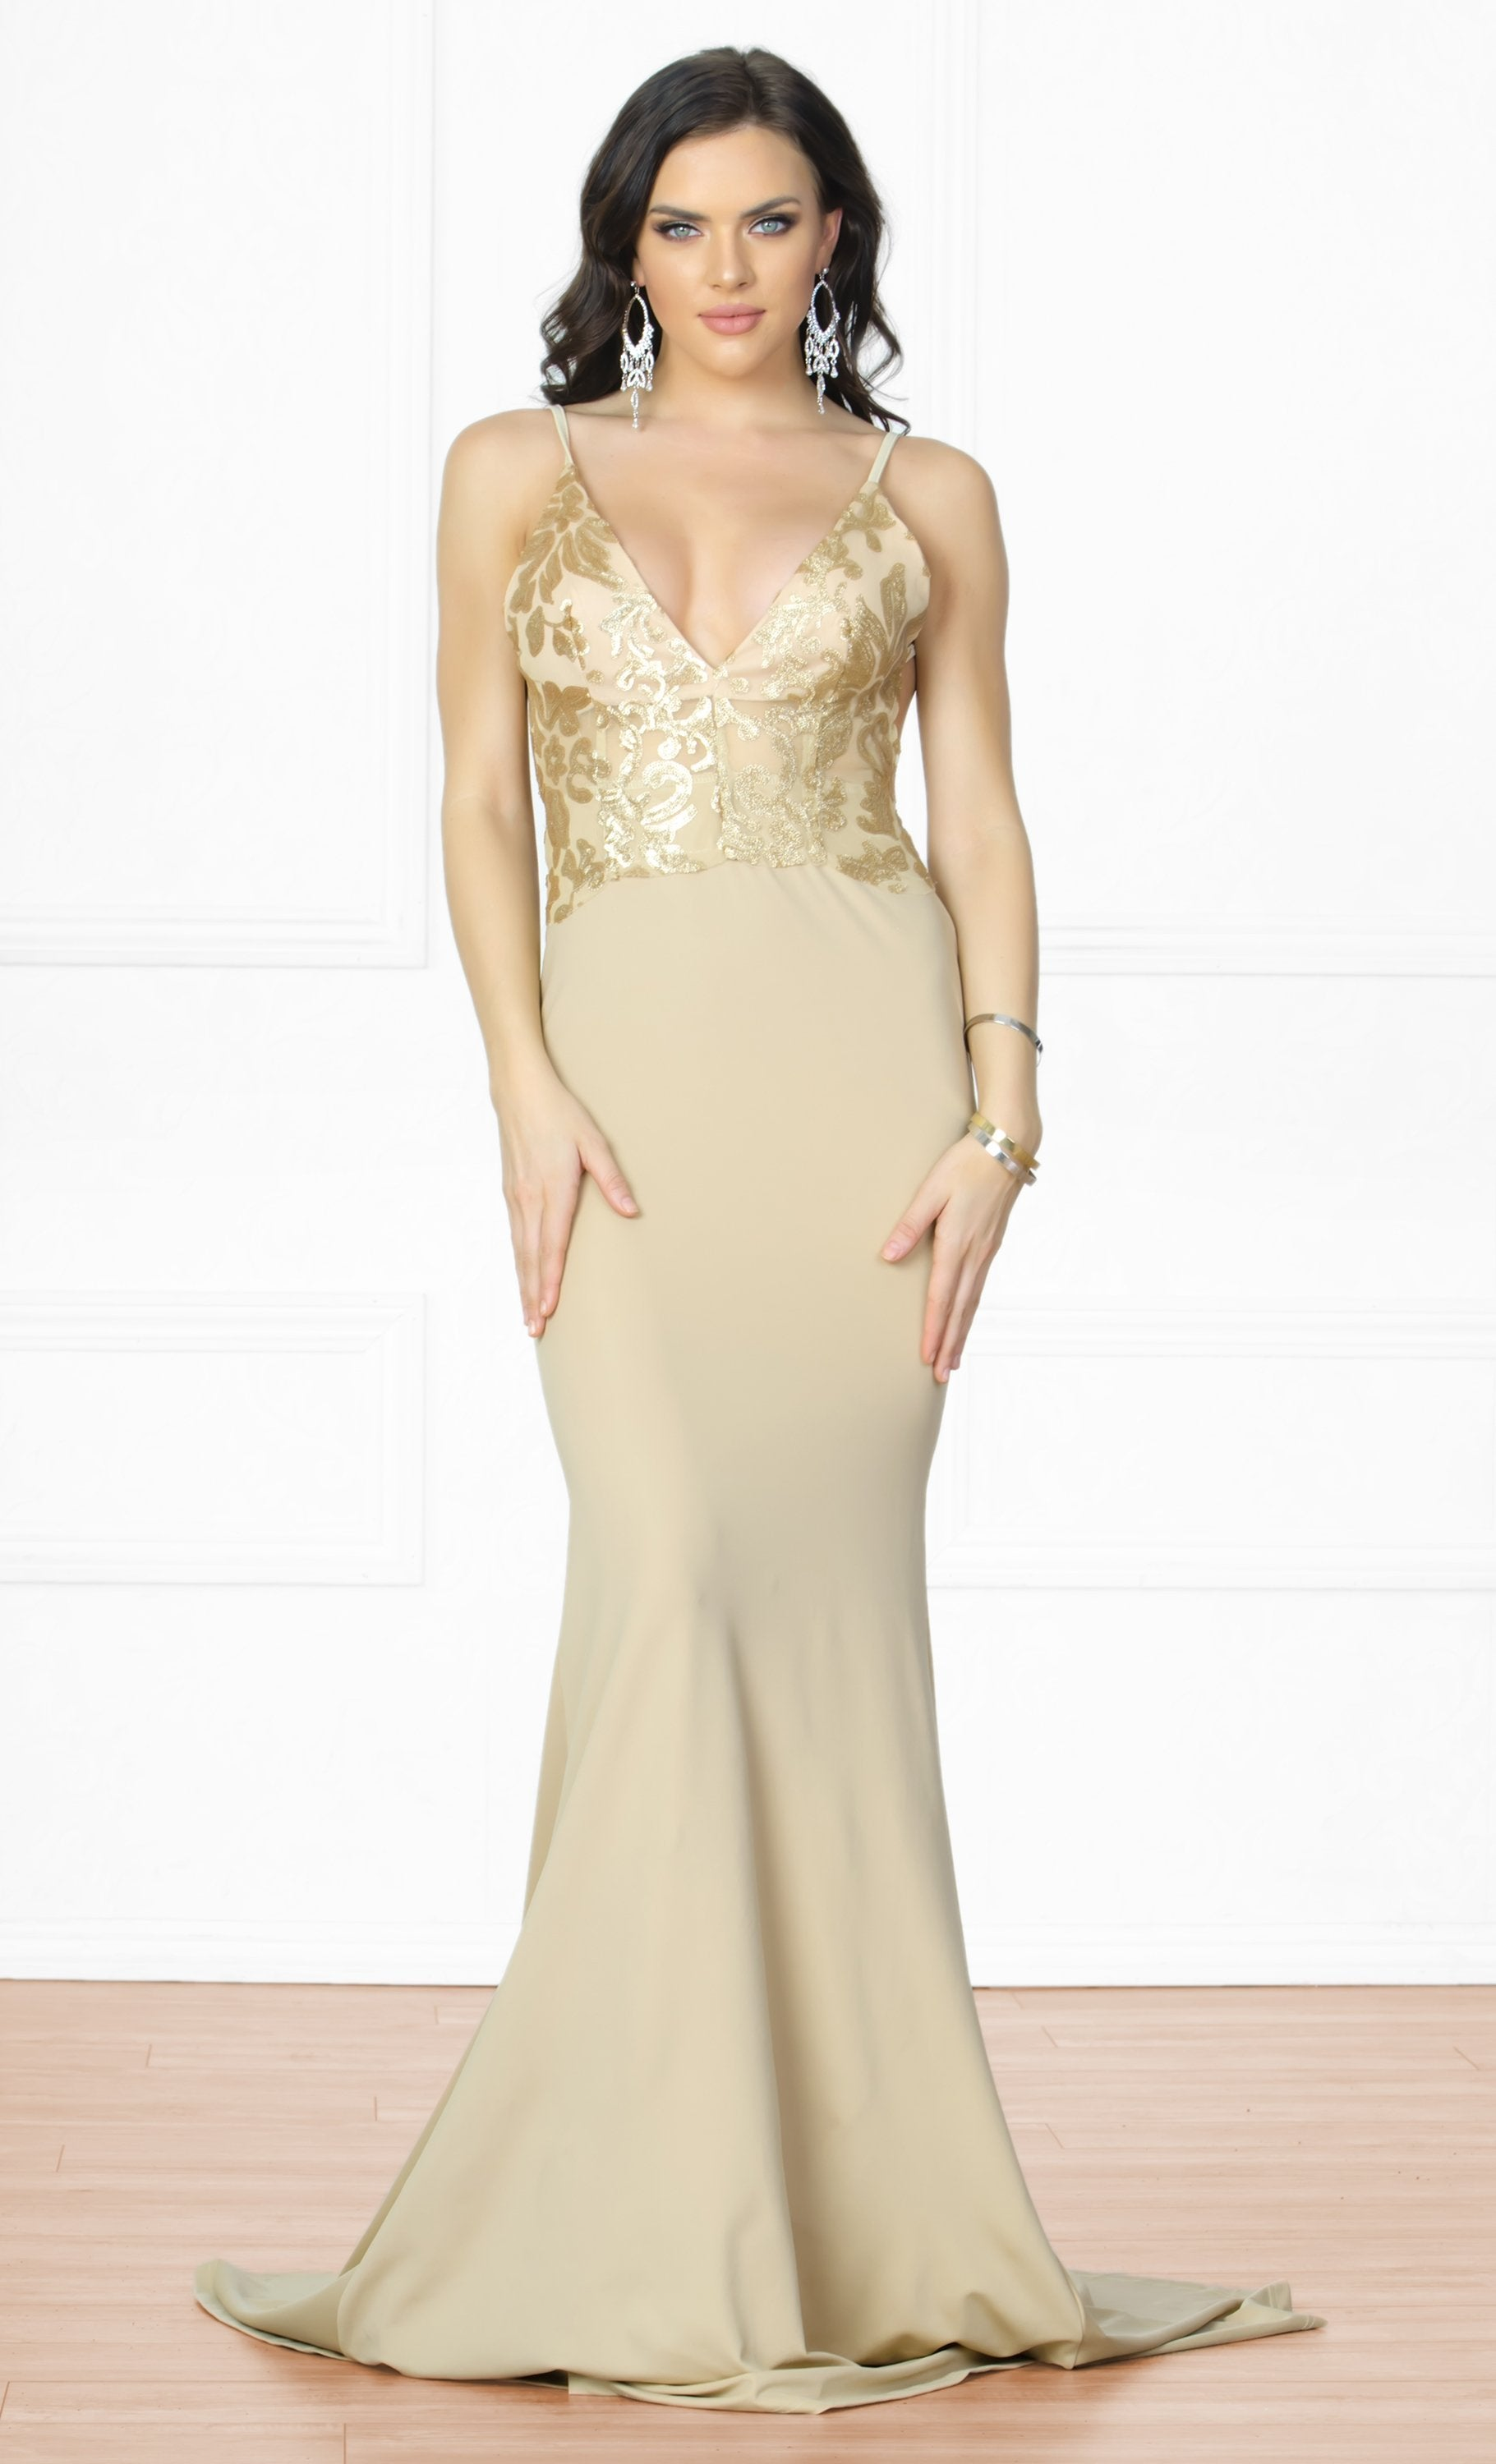 Indie XO Always Amazing Nude Gold Metallic Lace Spaghetti Strap Plunge V Neck Backless Ruched Maxi Dress Gown